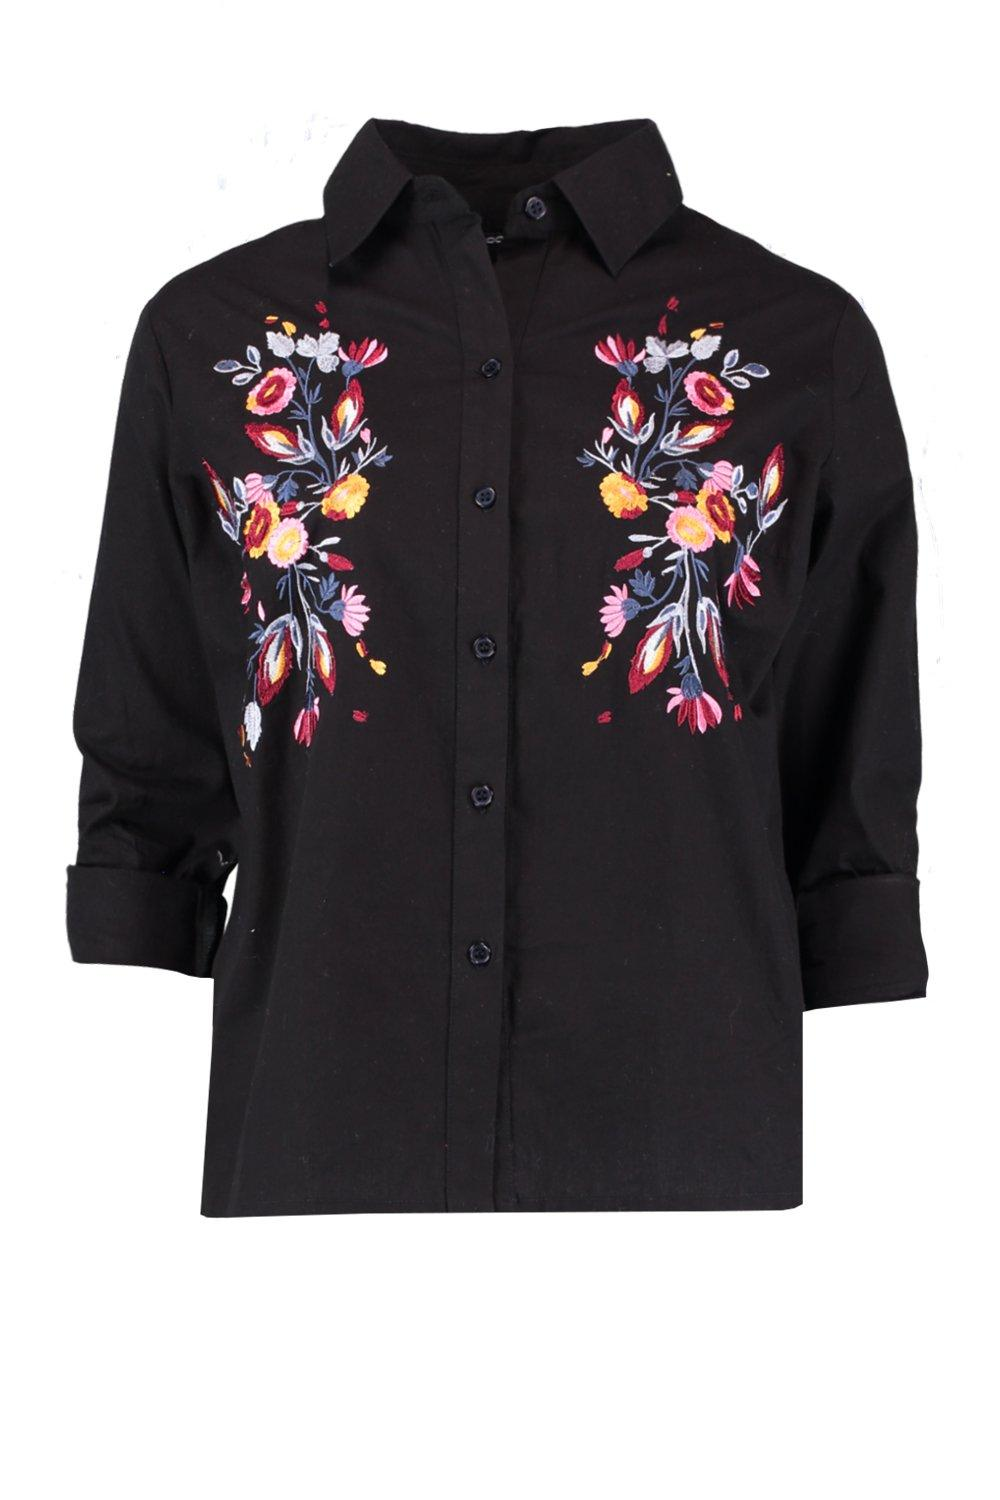 Woven Woven black Shirt Shirt Embroidered Embroidered Woven Embroidered Woven Shirt Embroidered black black A0SBwxqT